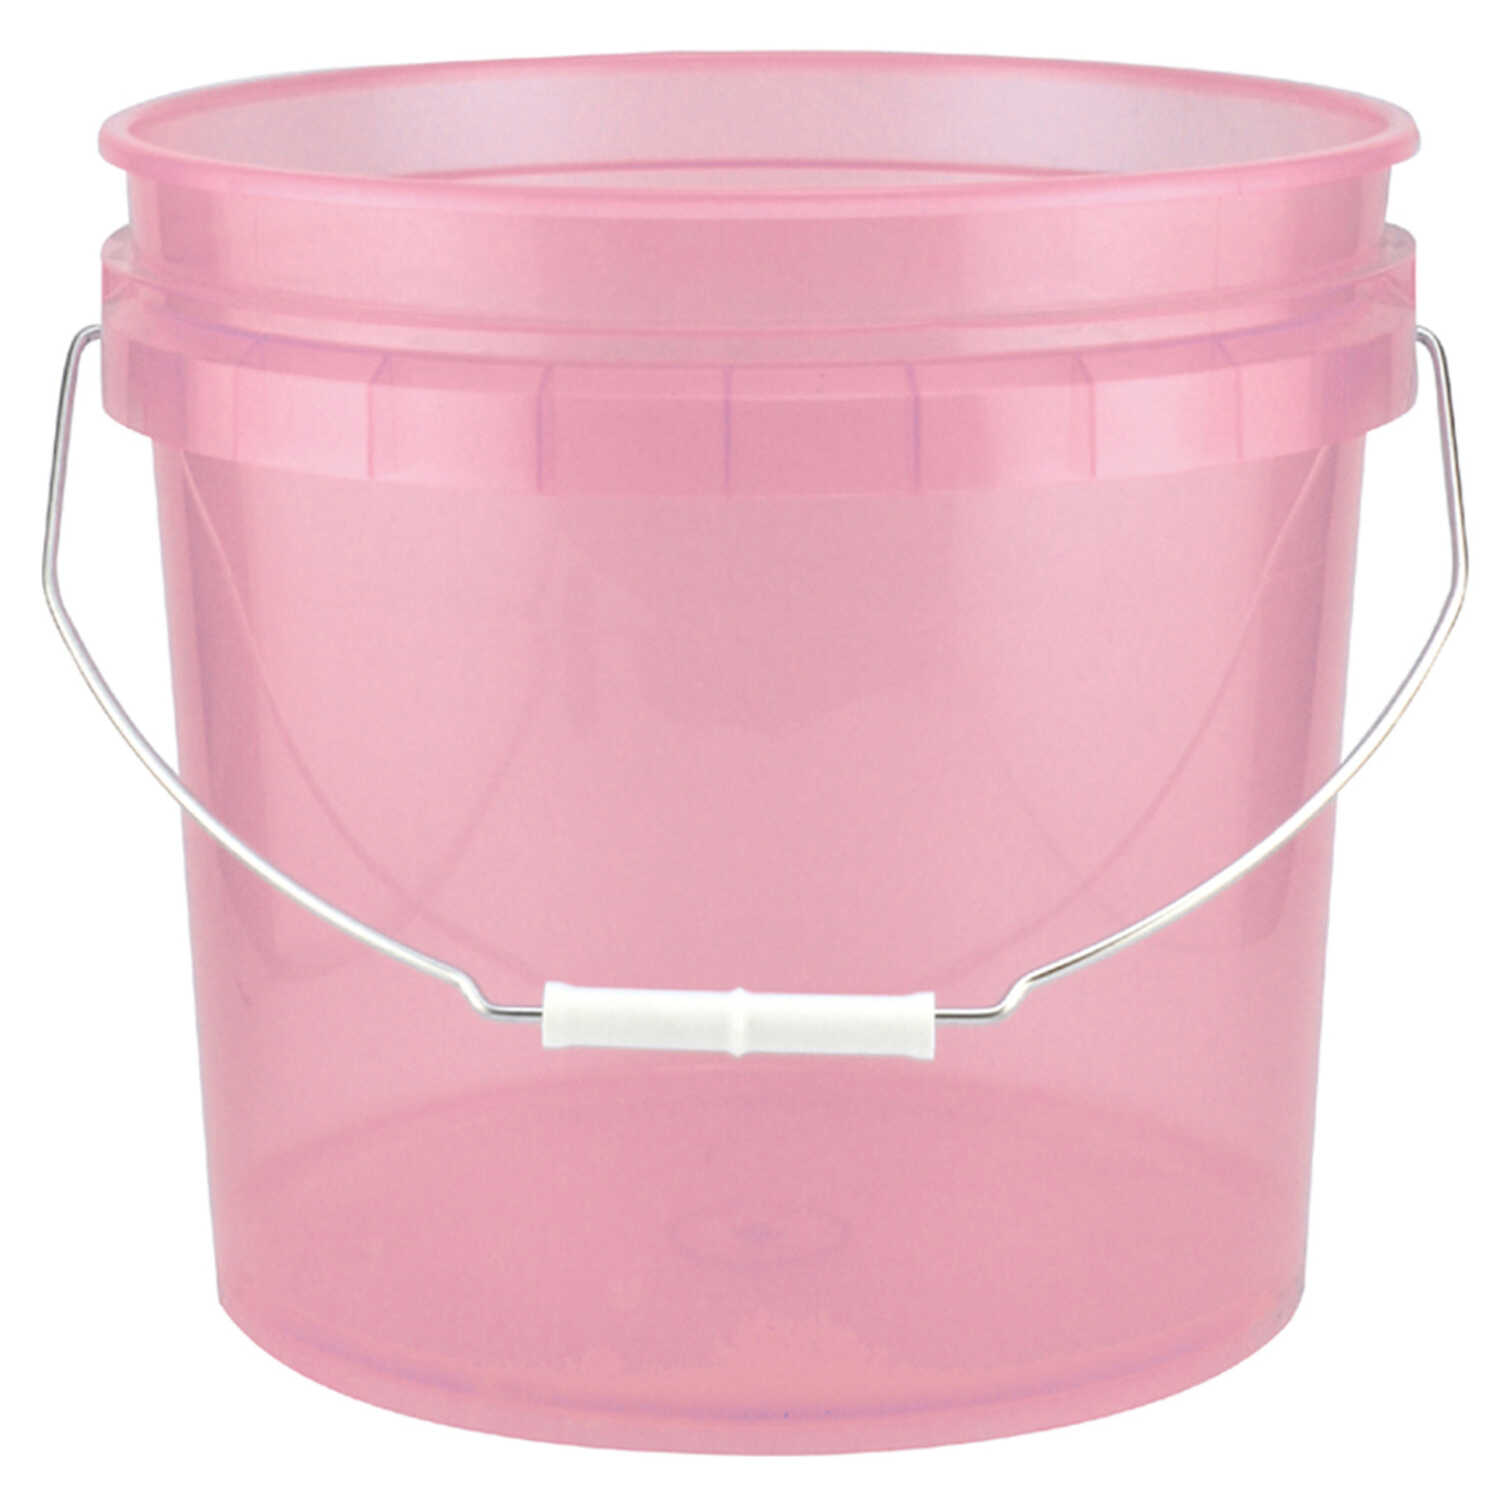 Leaktite  3.5 gal. Plastic  Bucket  Red